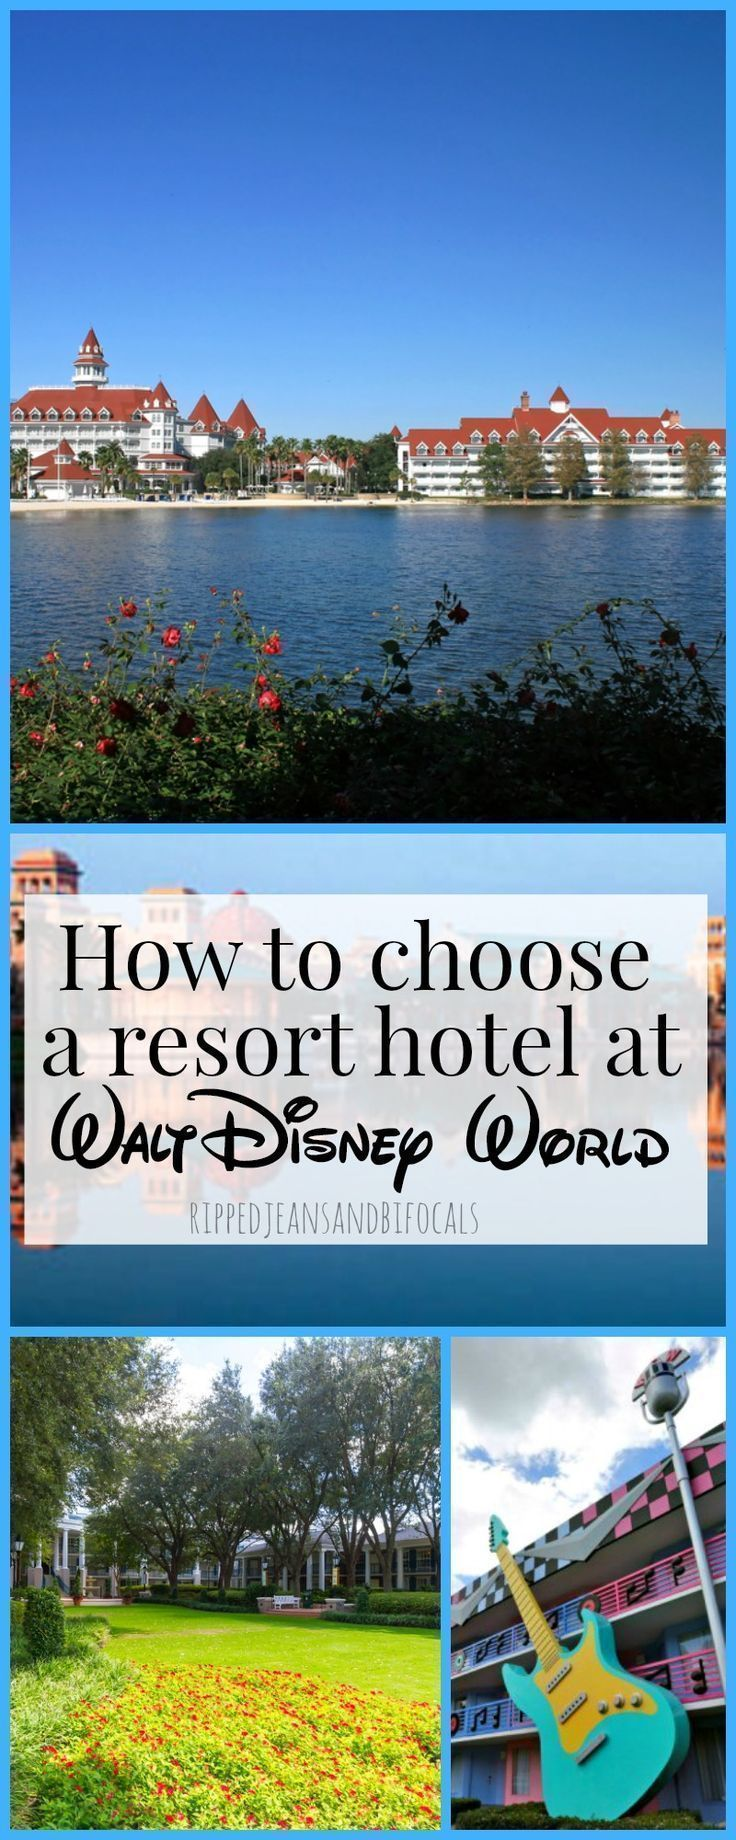 Difference between value, moderate and deluxe resorts at Disney World